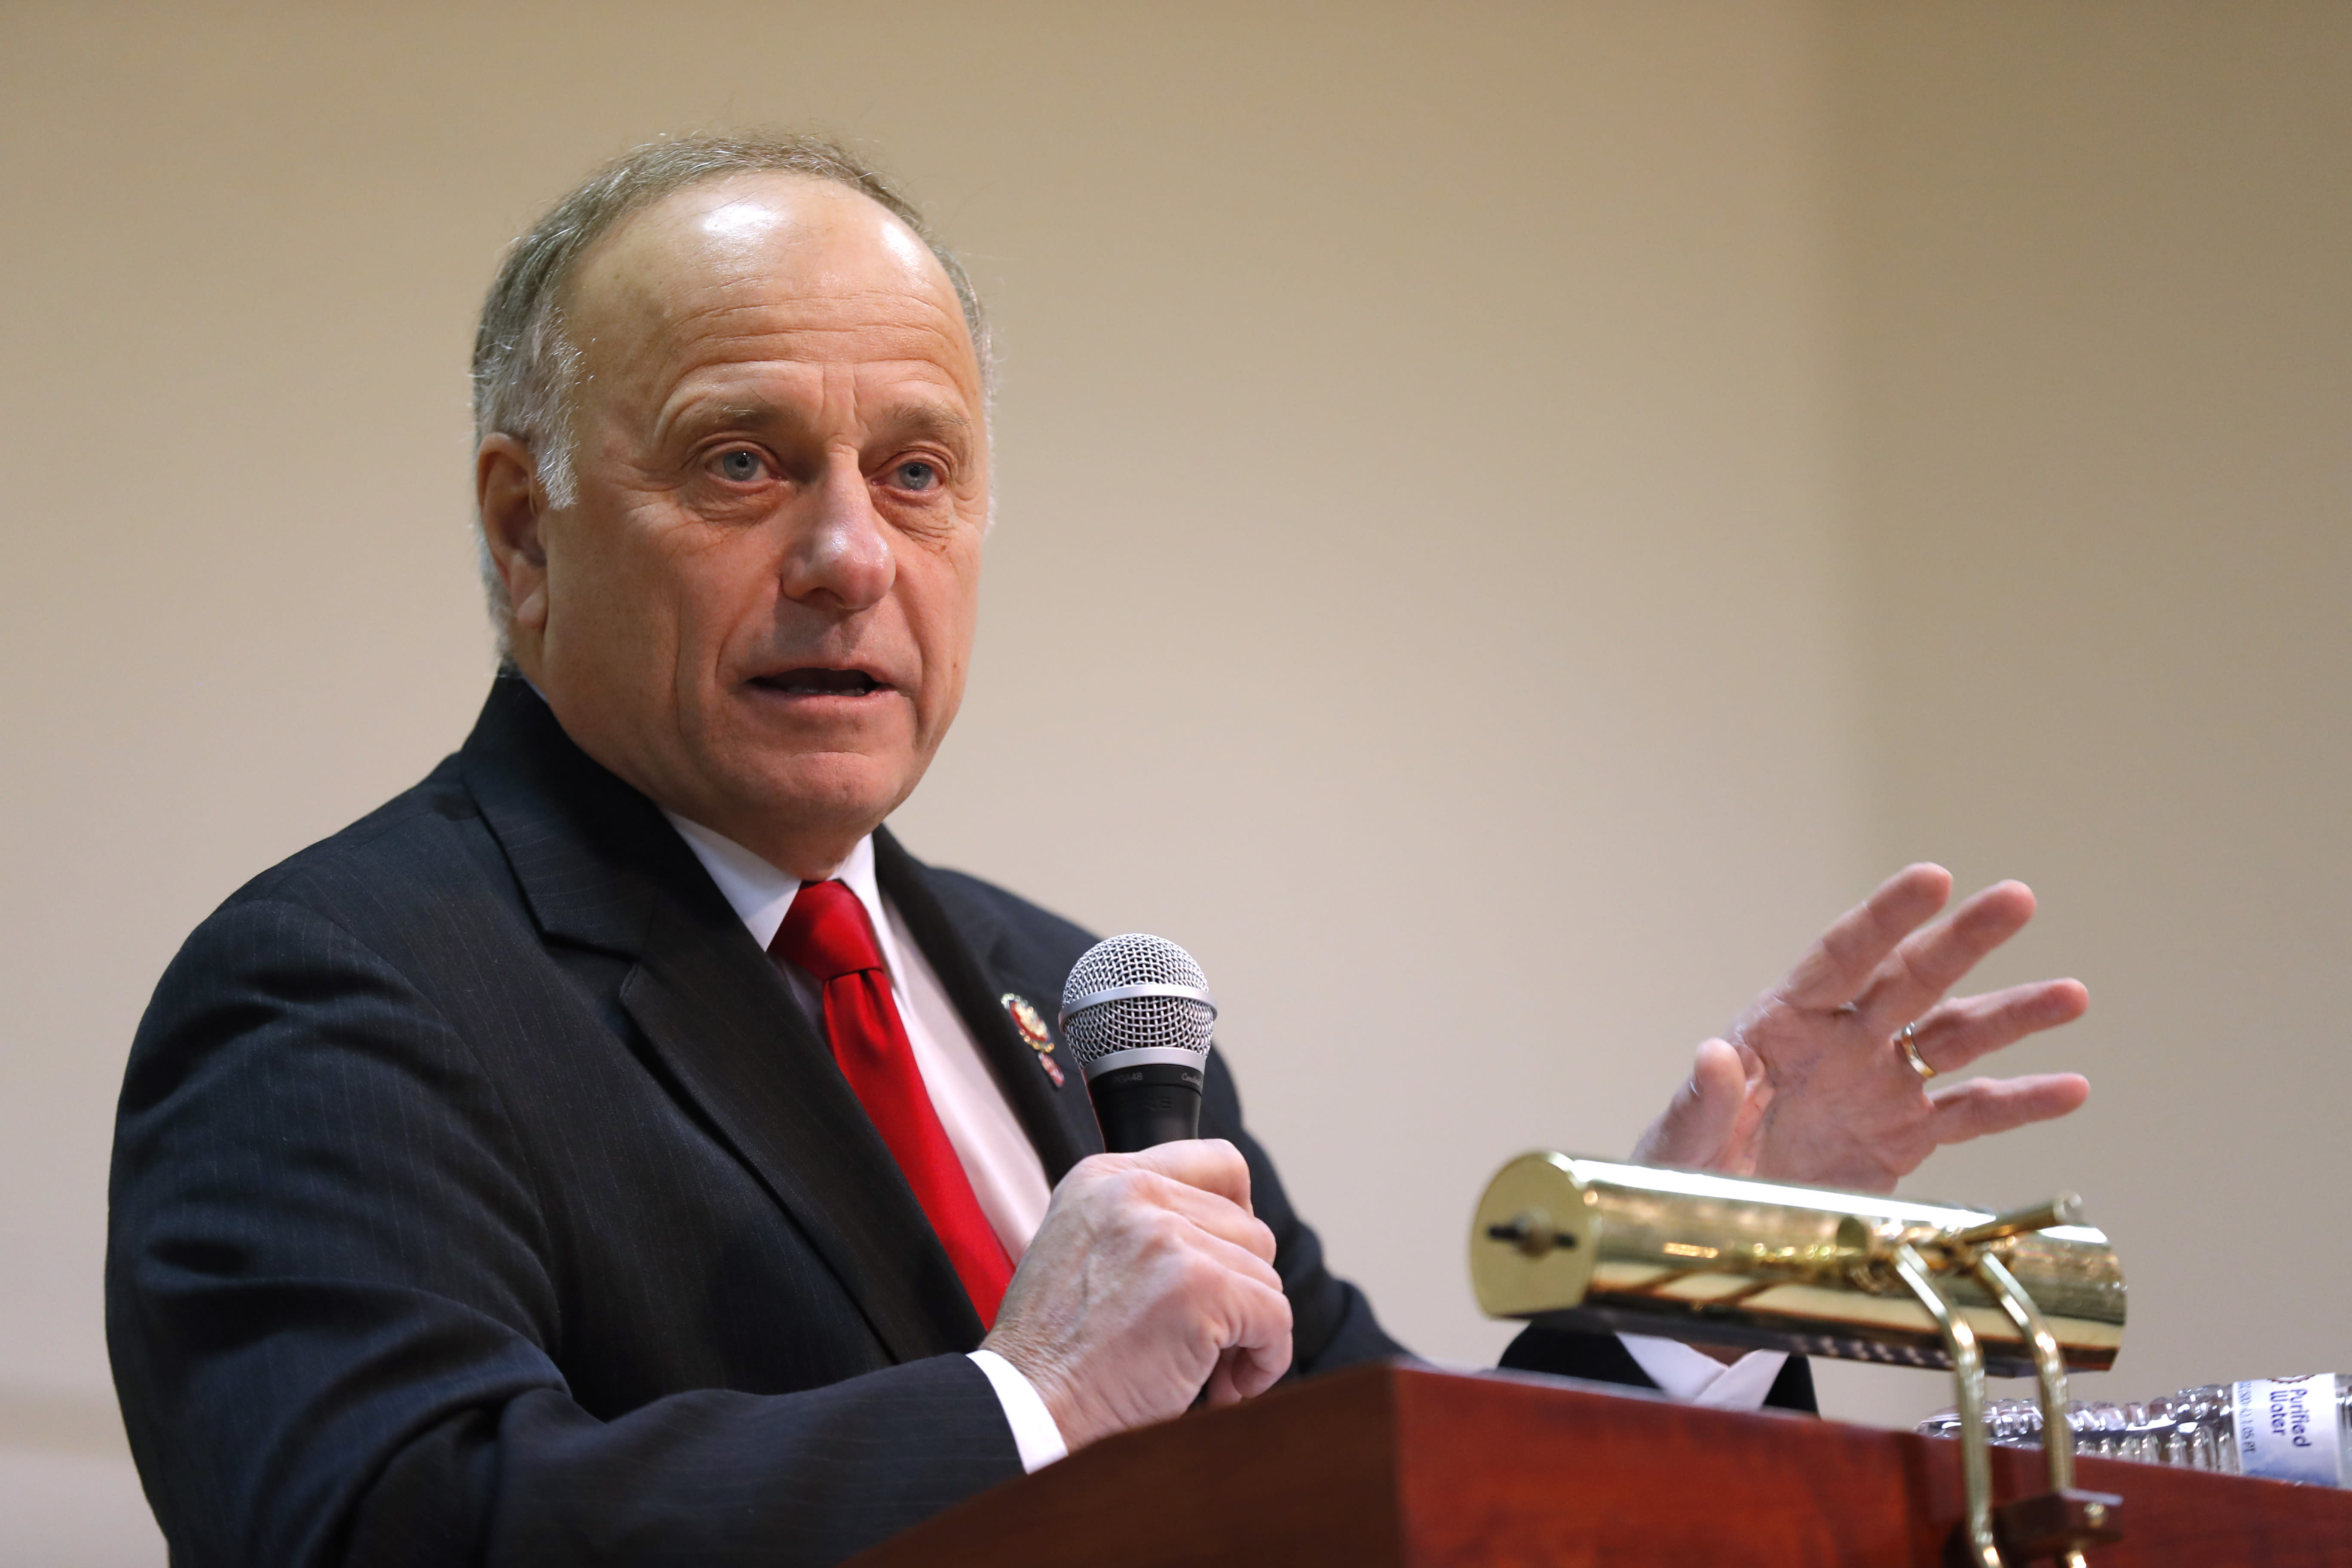 Steve King: Rape and incest 'aided population growth'